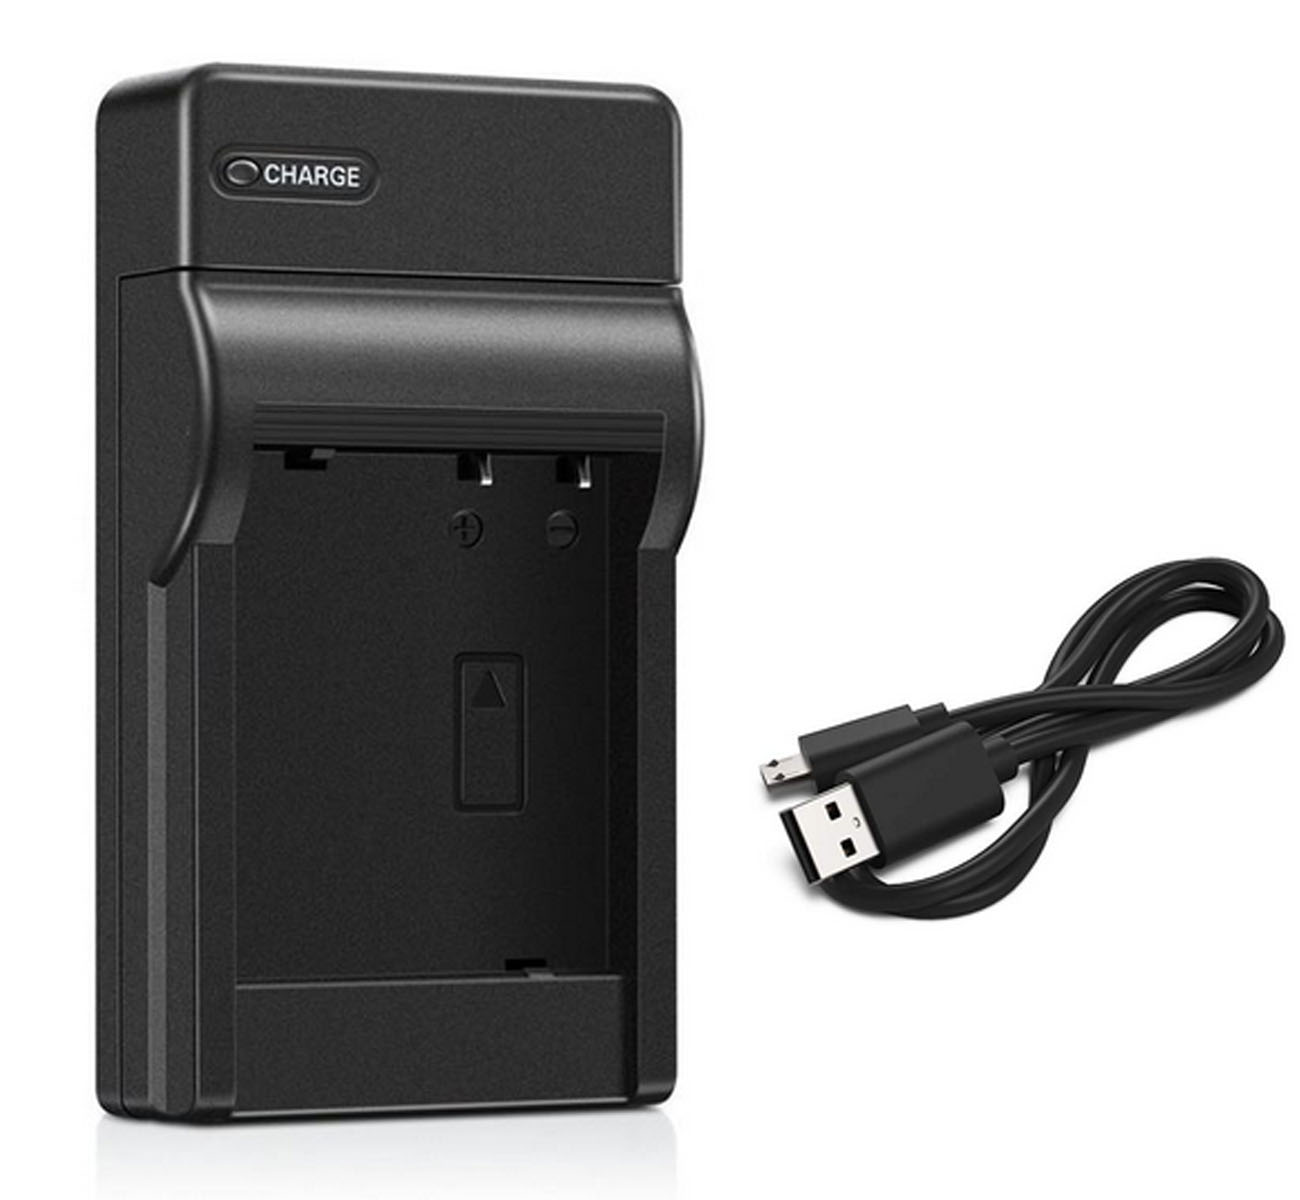 Battery Charger For Panasonic Lumix DMC-FZ200, DMC-FZ300, DMC-FZ330, DMC-FZ1000, DMC-FZ2000, DMC-FZ2500 Digital Camera image